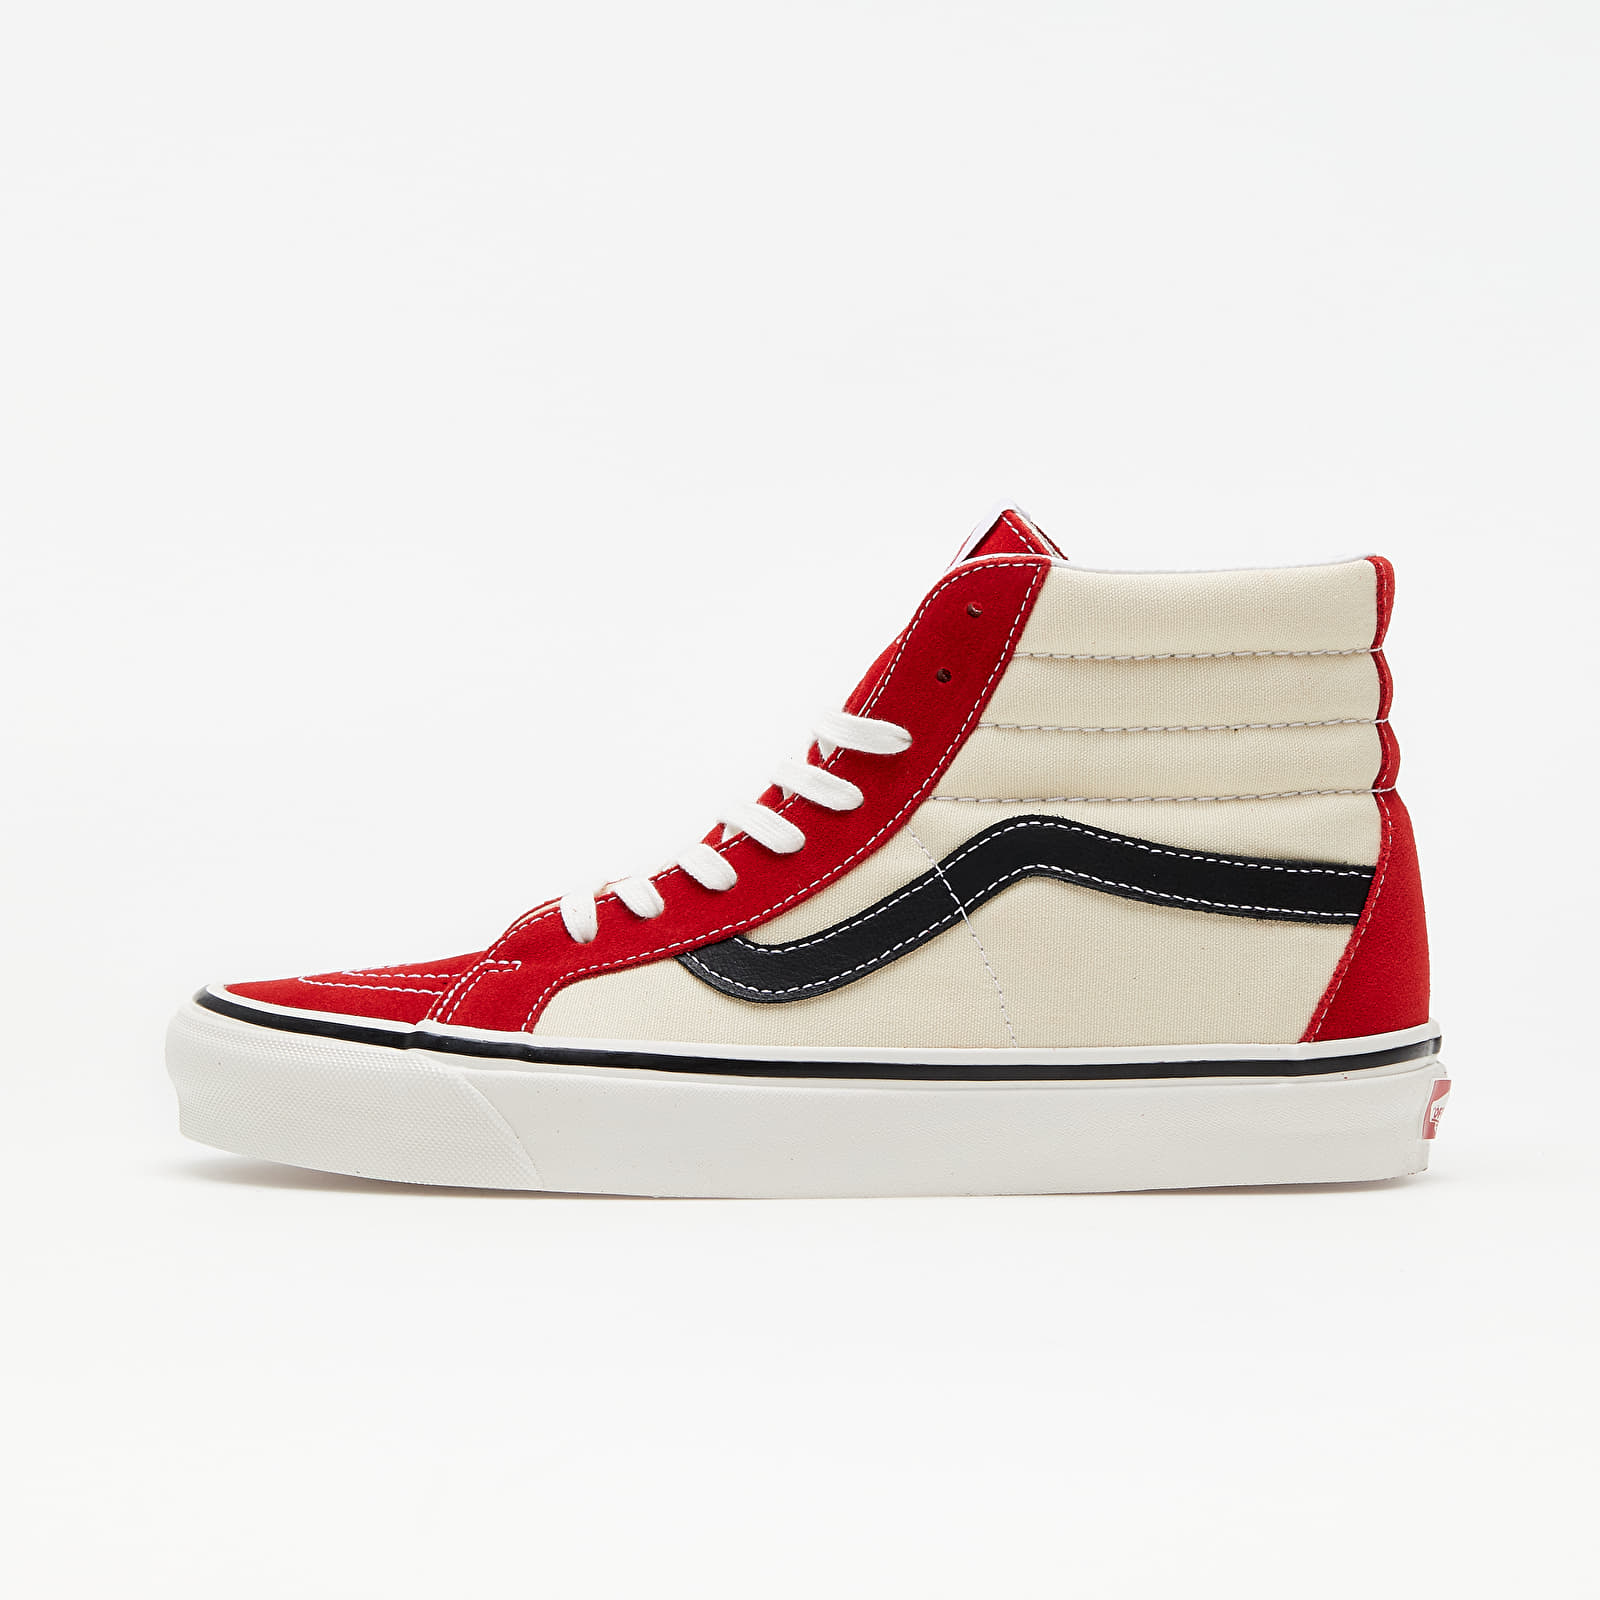 Vans Sk8-Hi 38 DX (Anaheim Factory) Og Red/ Og White/ Og Black EUR 40.5